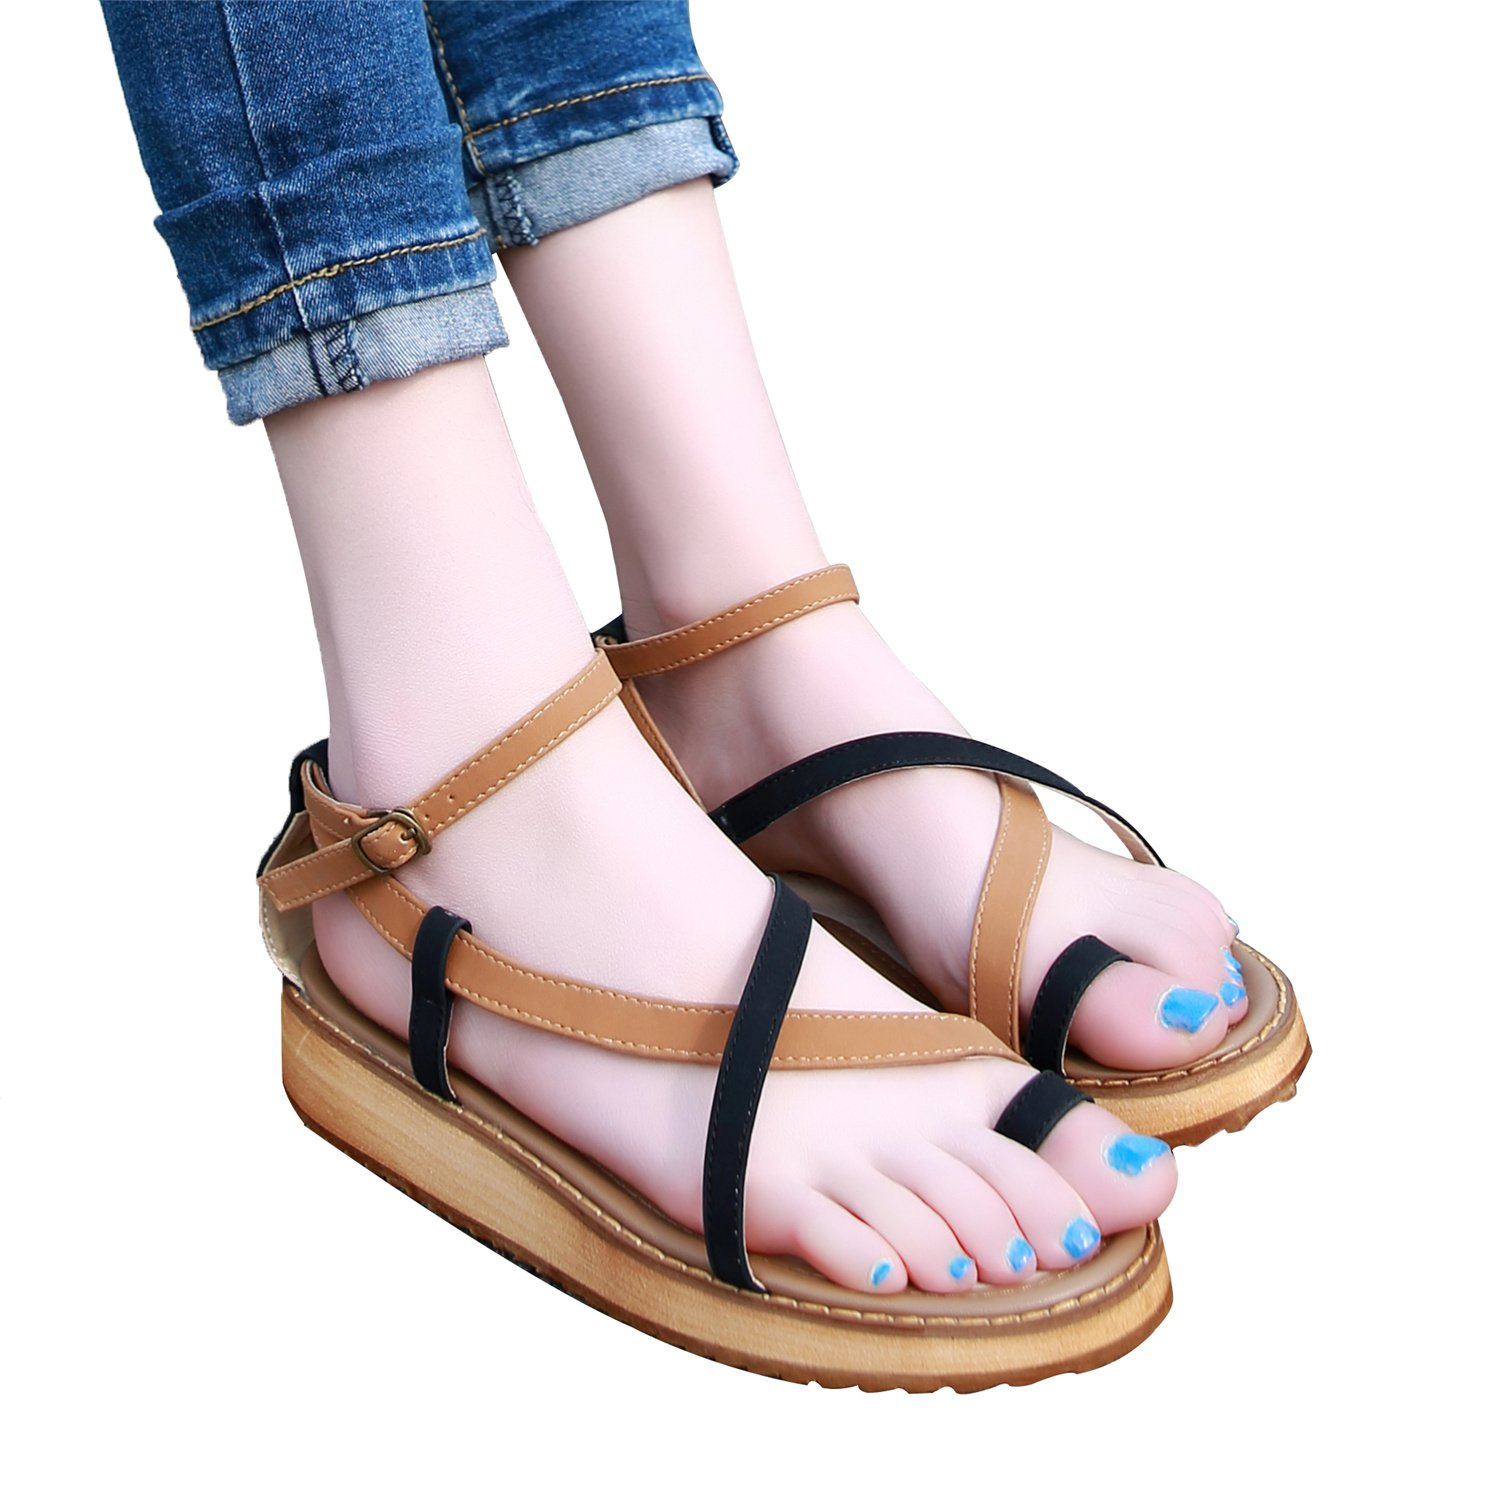 Smilun Ladys Roman Sandal Shoes Flat Cross Strappy Gladiator Wedge Sandals